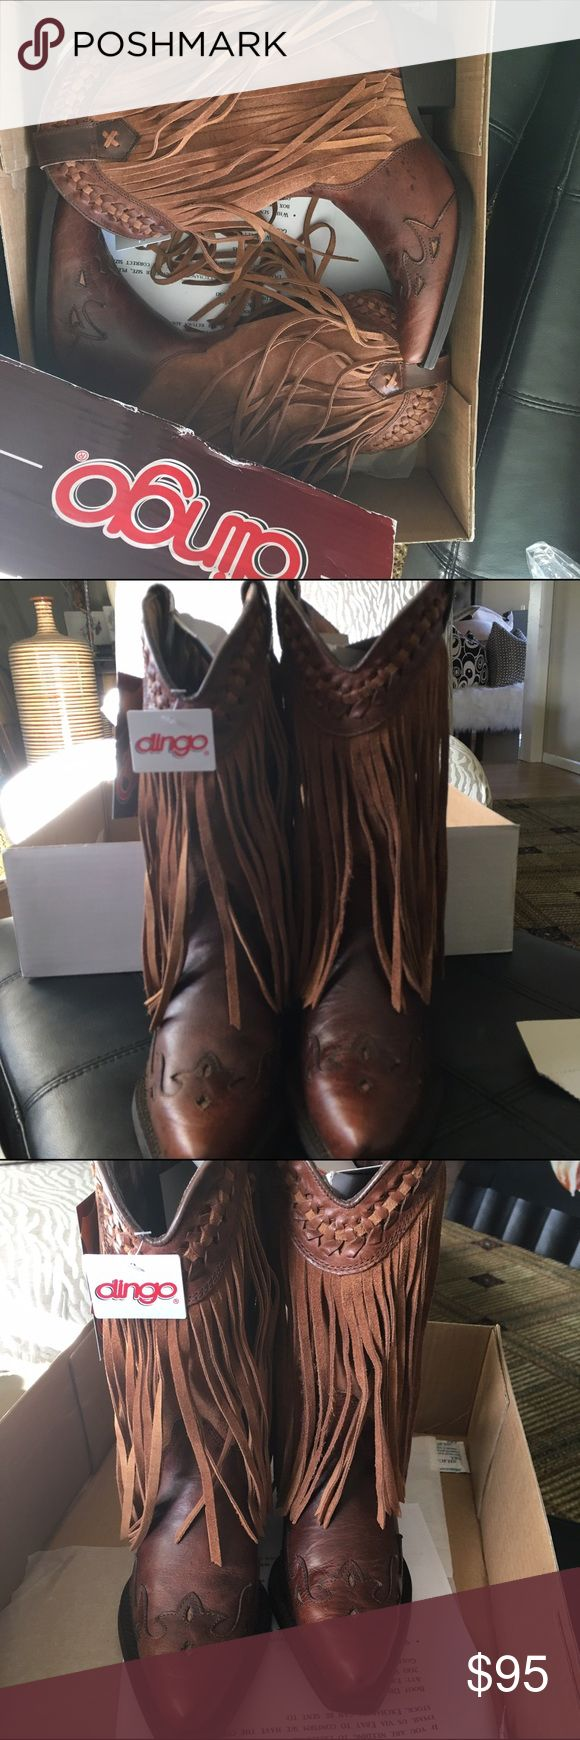 BRAND NEW DINGO LEATHER FRINGE COWBOY BOOTS~SIZE 8 LOW COWBOY BOOTS, BRAND NEW DINGO LEATHER COWBOY BOOTS WITH SUEDE FRINGE~FROM THE ORIGINAL COWBOY BOOT BRAND DINGO. SIZE 8. DINGO Shoes Heeled Boots